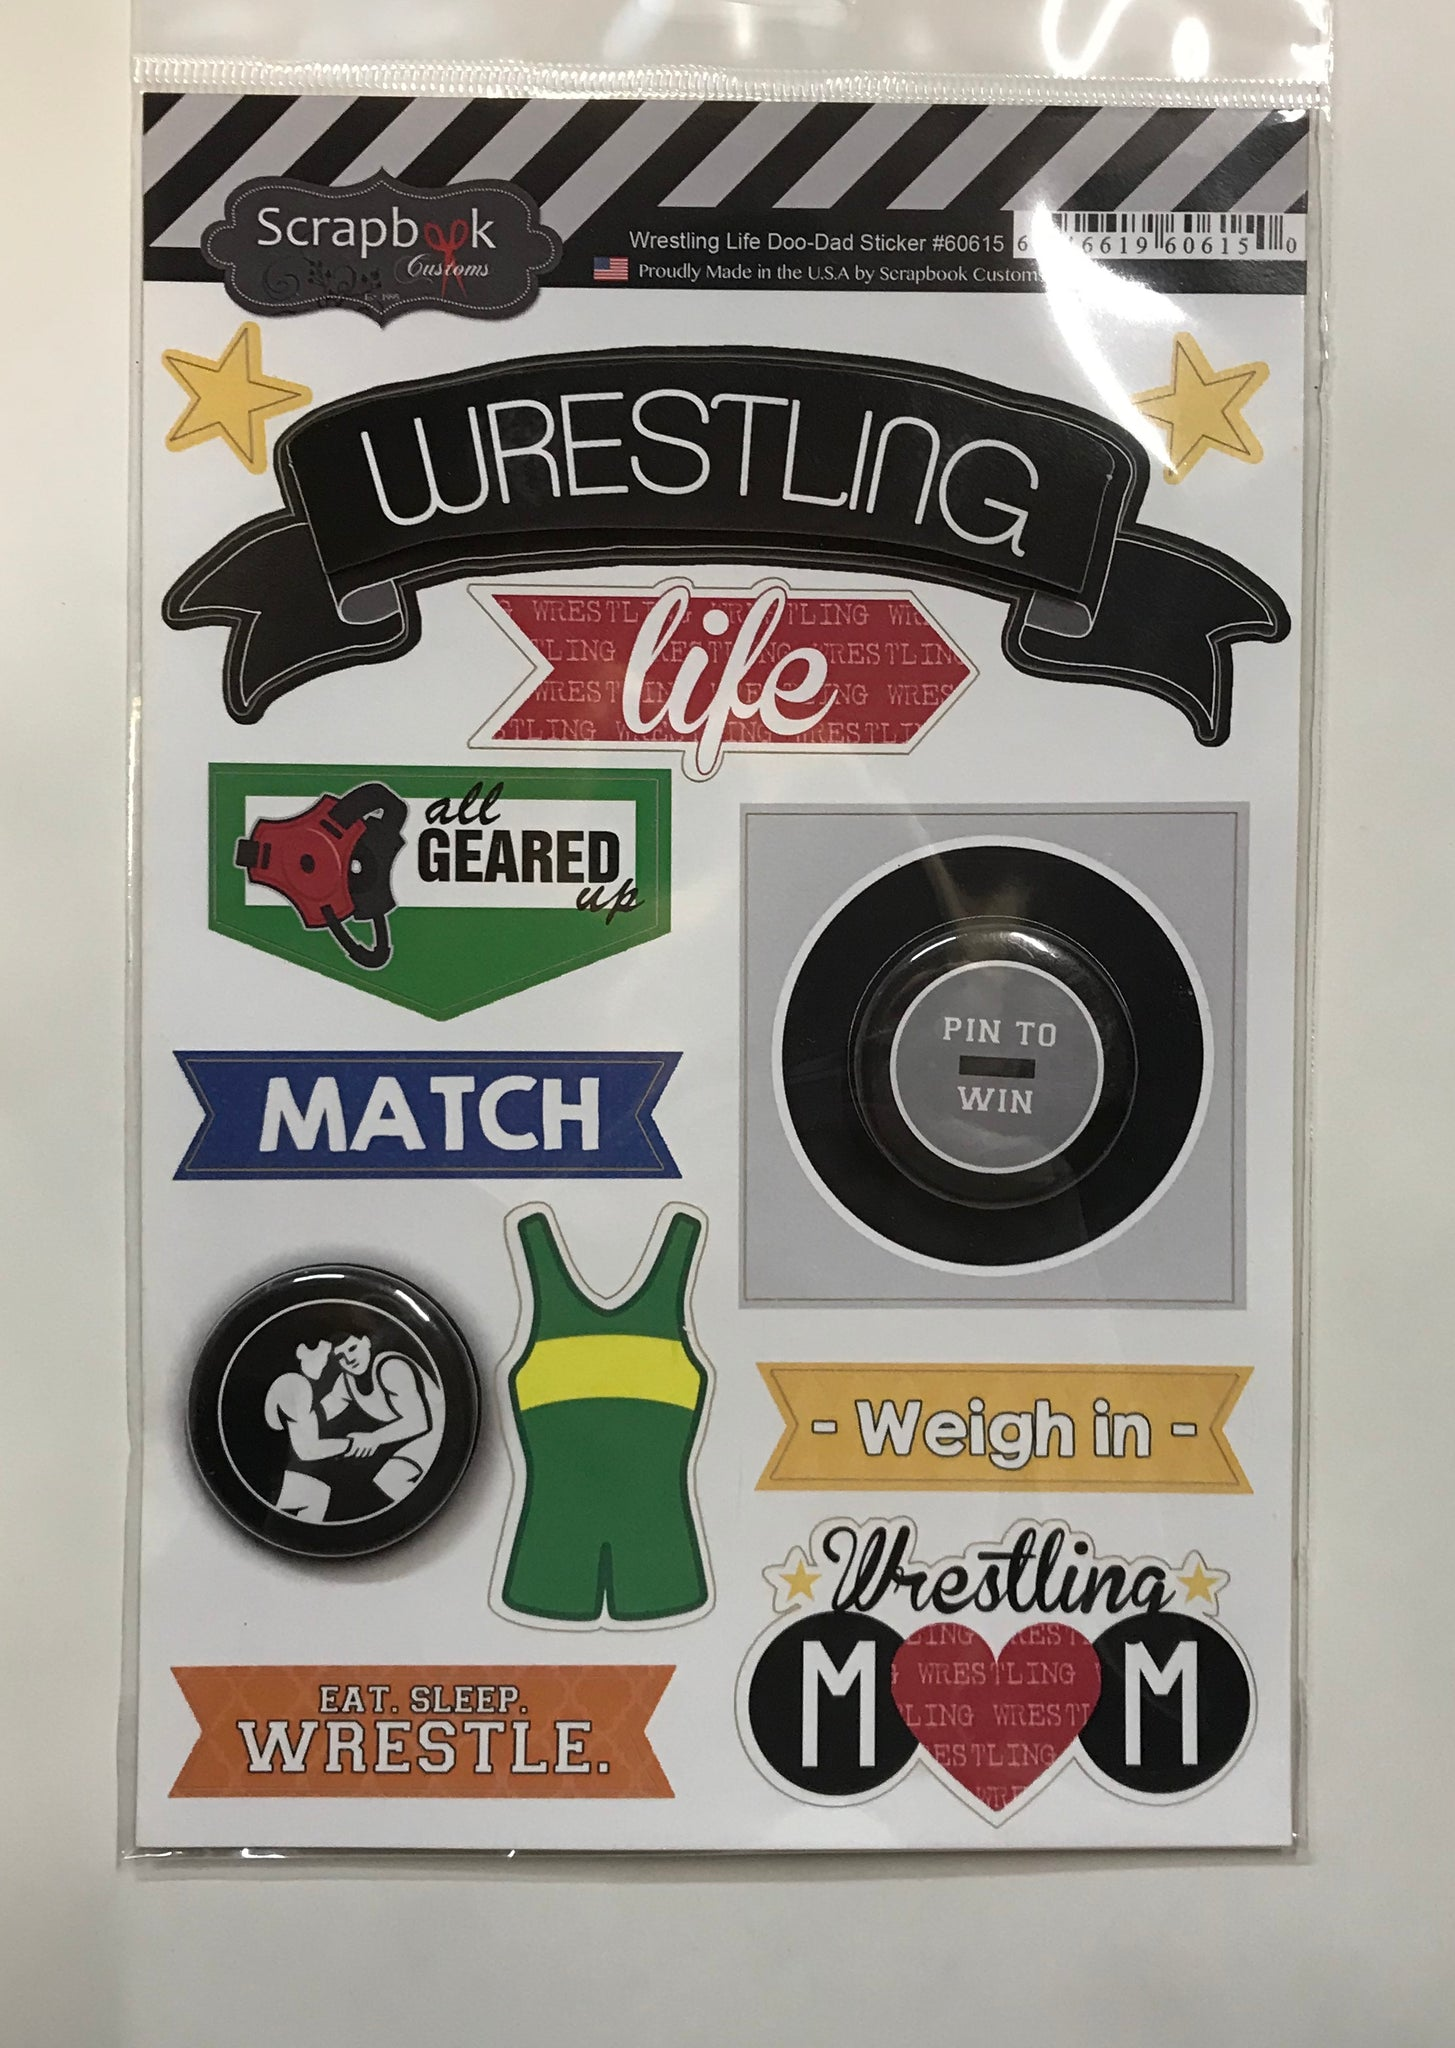 Wrestling Life Doo Dad Sticker